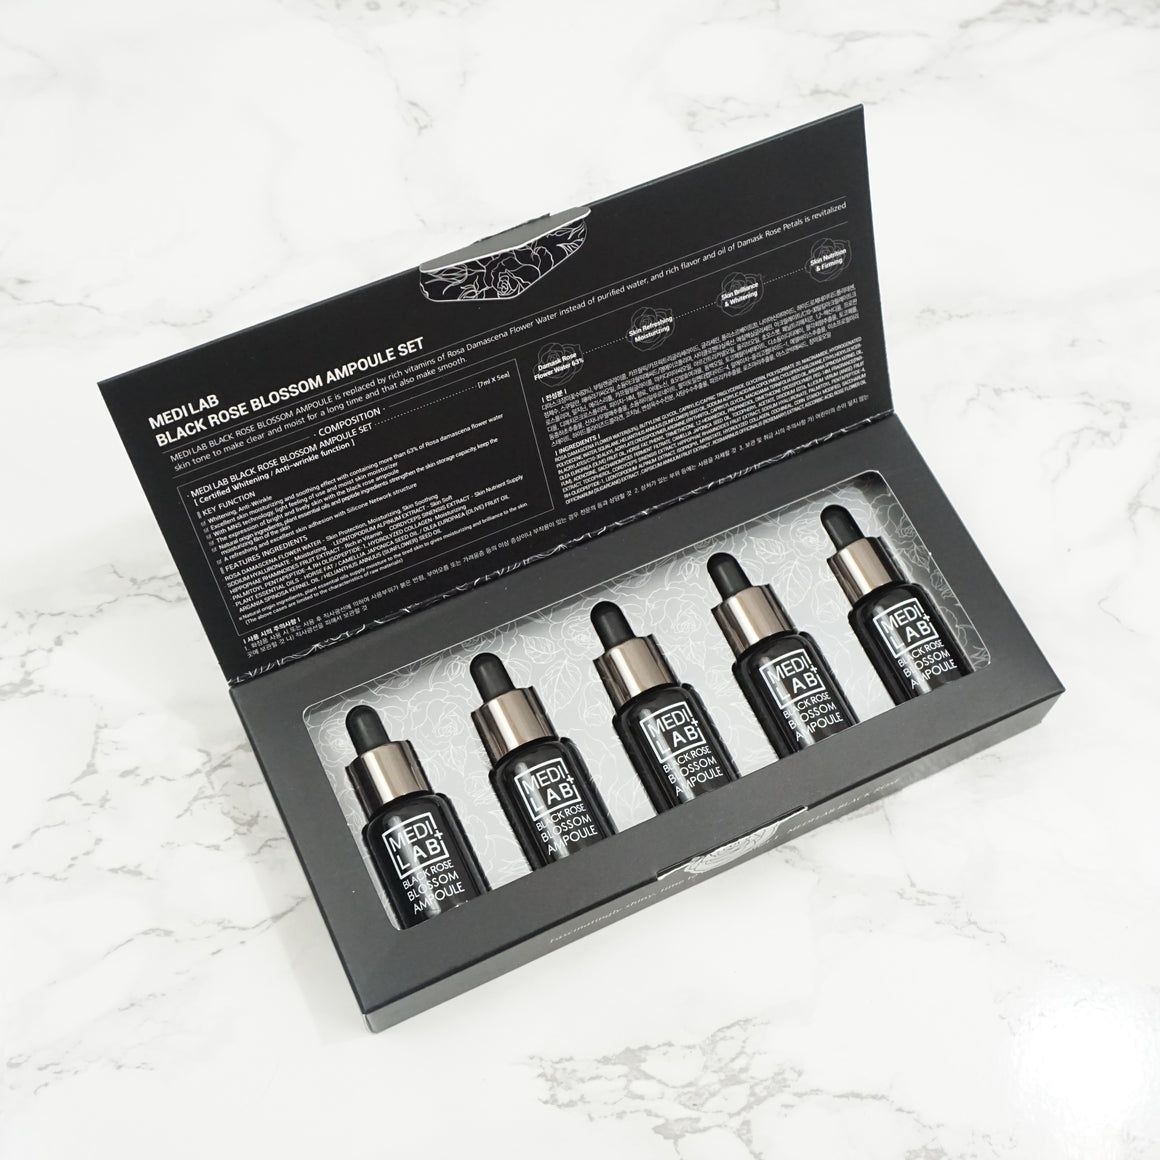 MEDILAB Black Rose Ampoule [EXP 11.18.2019]